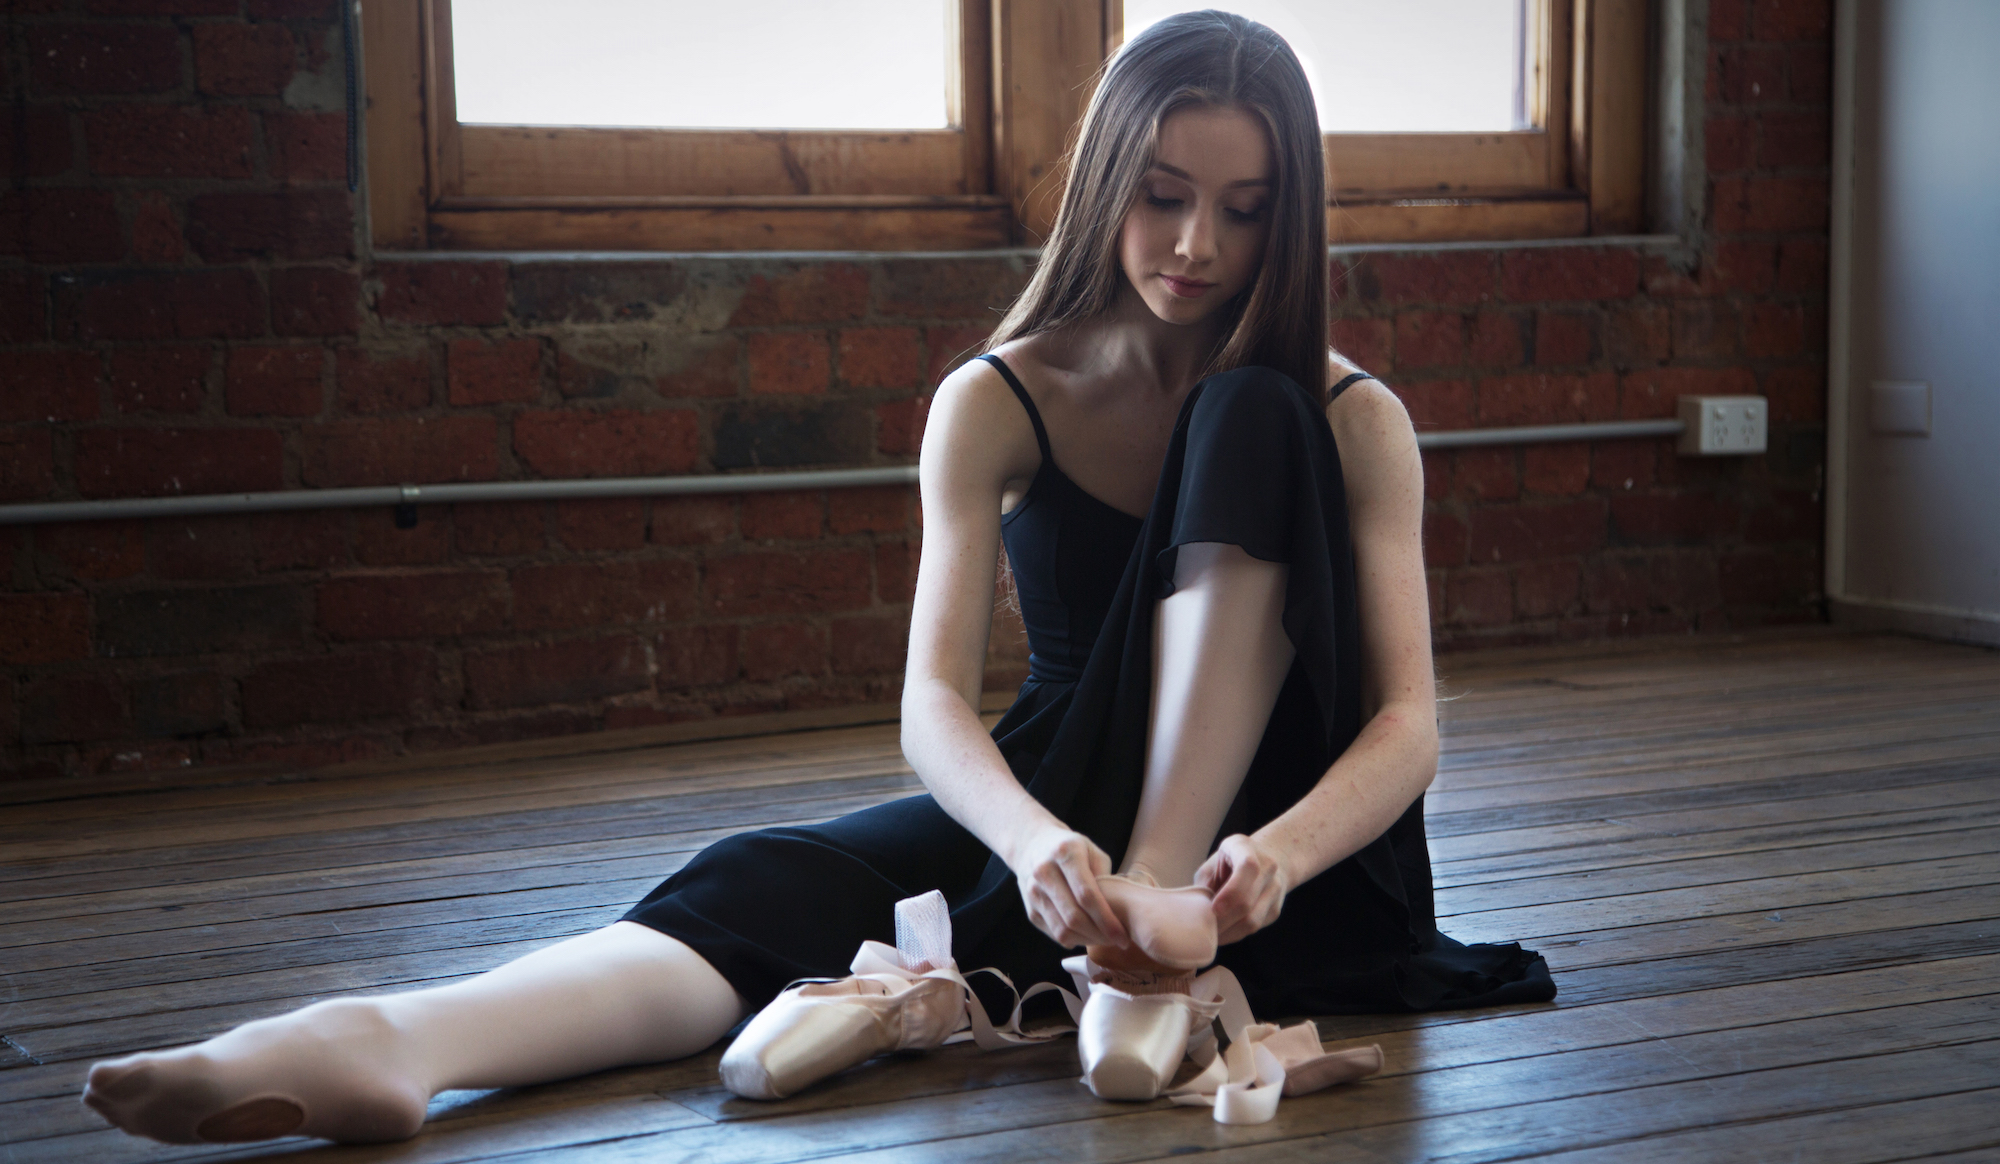 Pointe shoe image 3.jpg